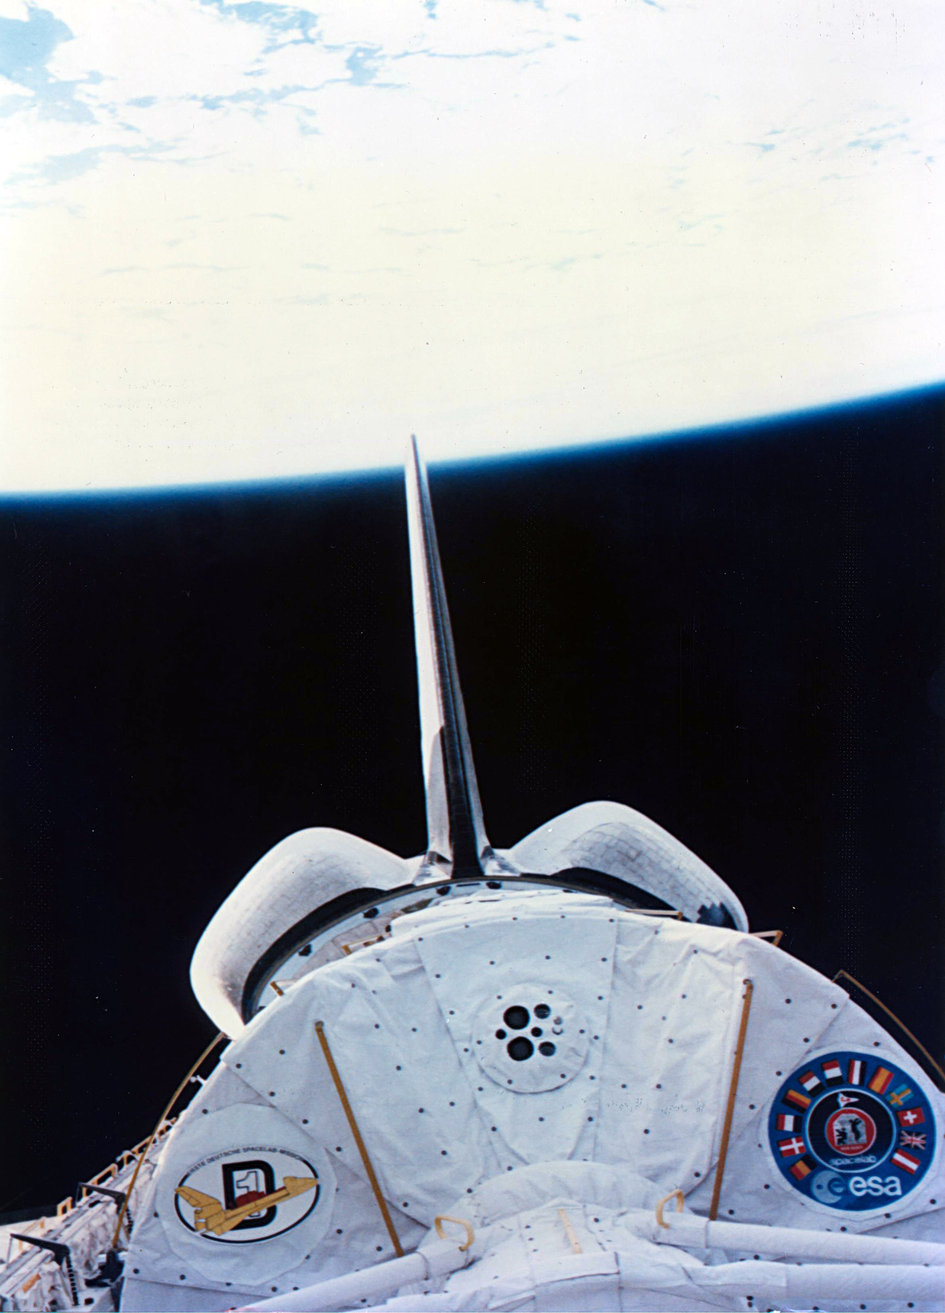 In-orbit view of Spacelab in Challenger's payload bay